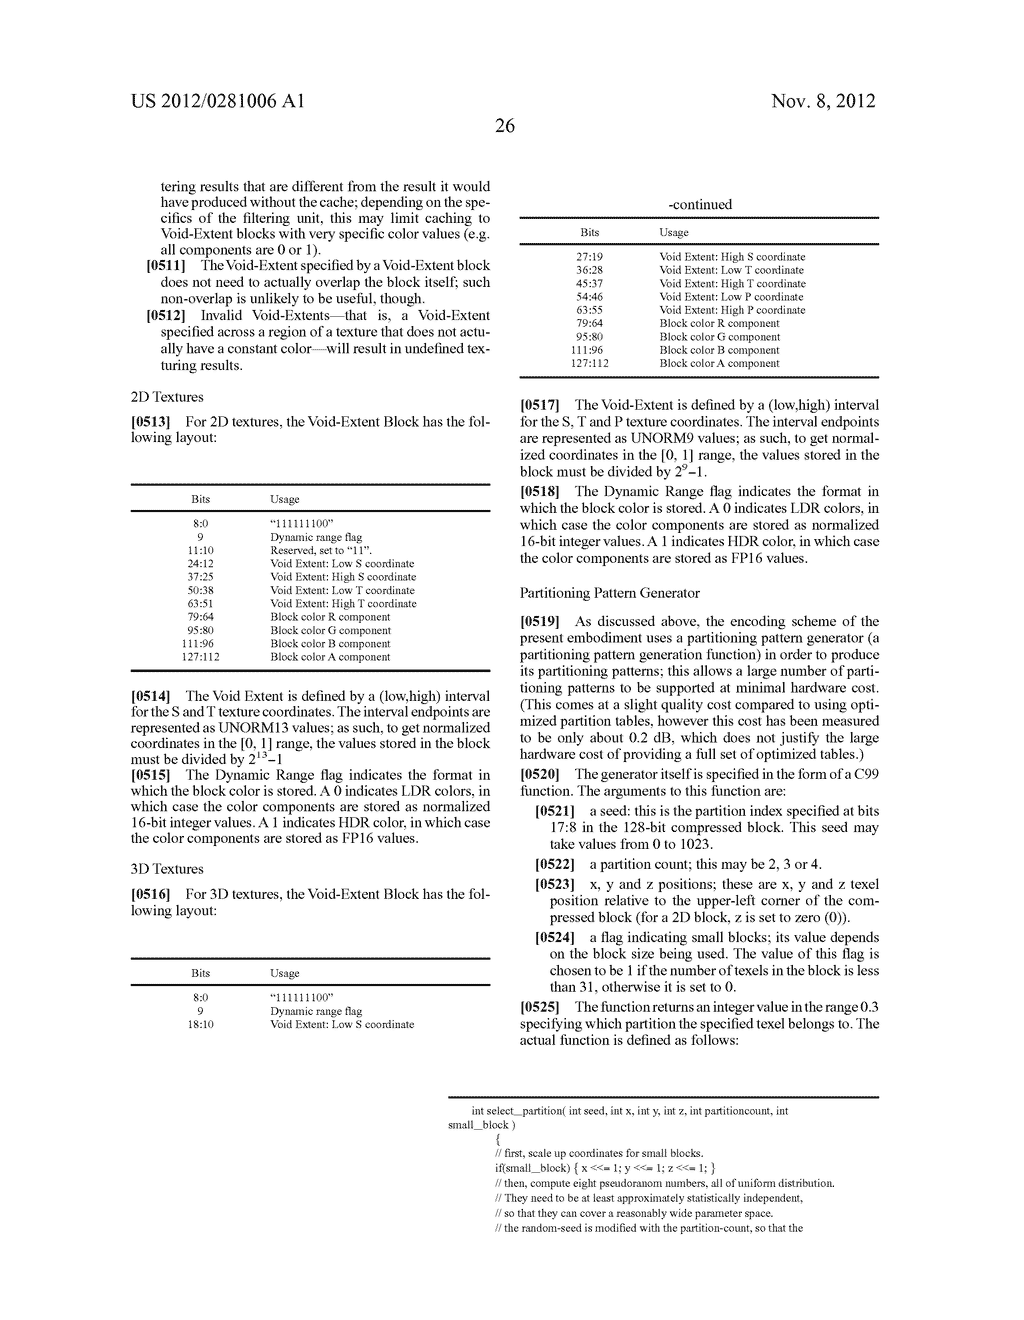 Method Of And Apparatus For Encoding And Decoding Data - diagram, schematic, and image 38